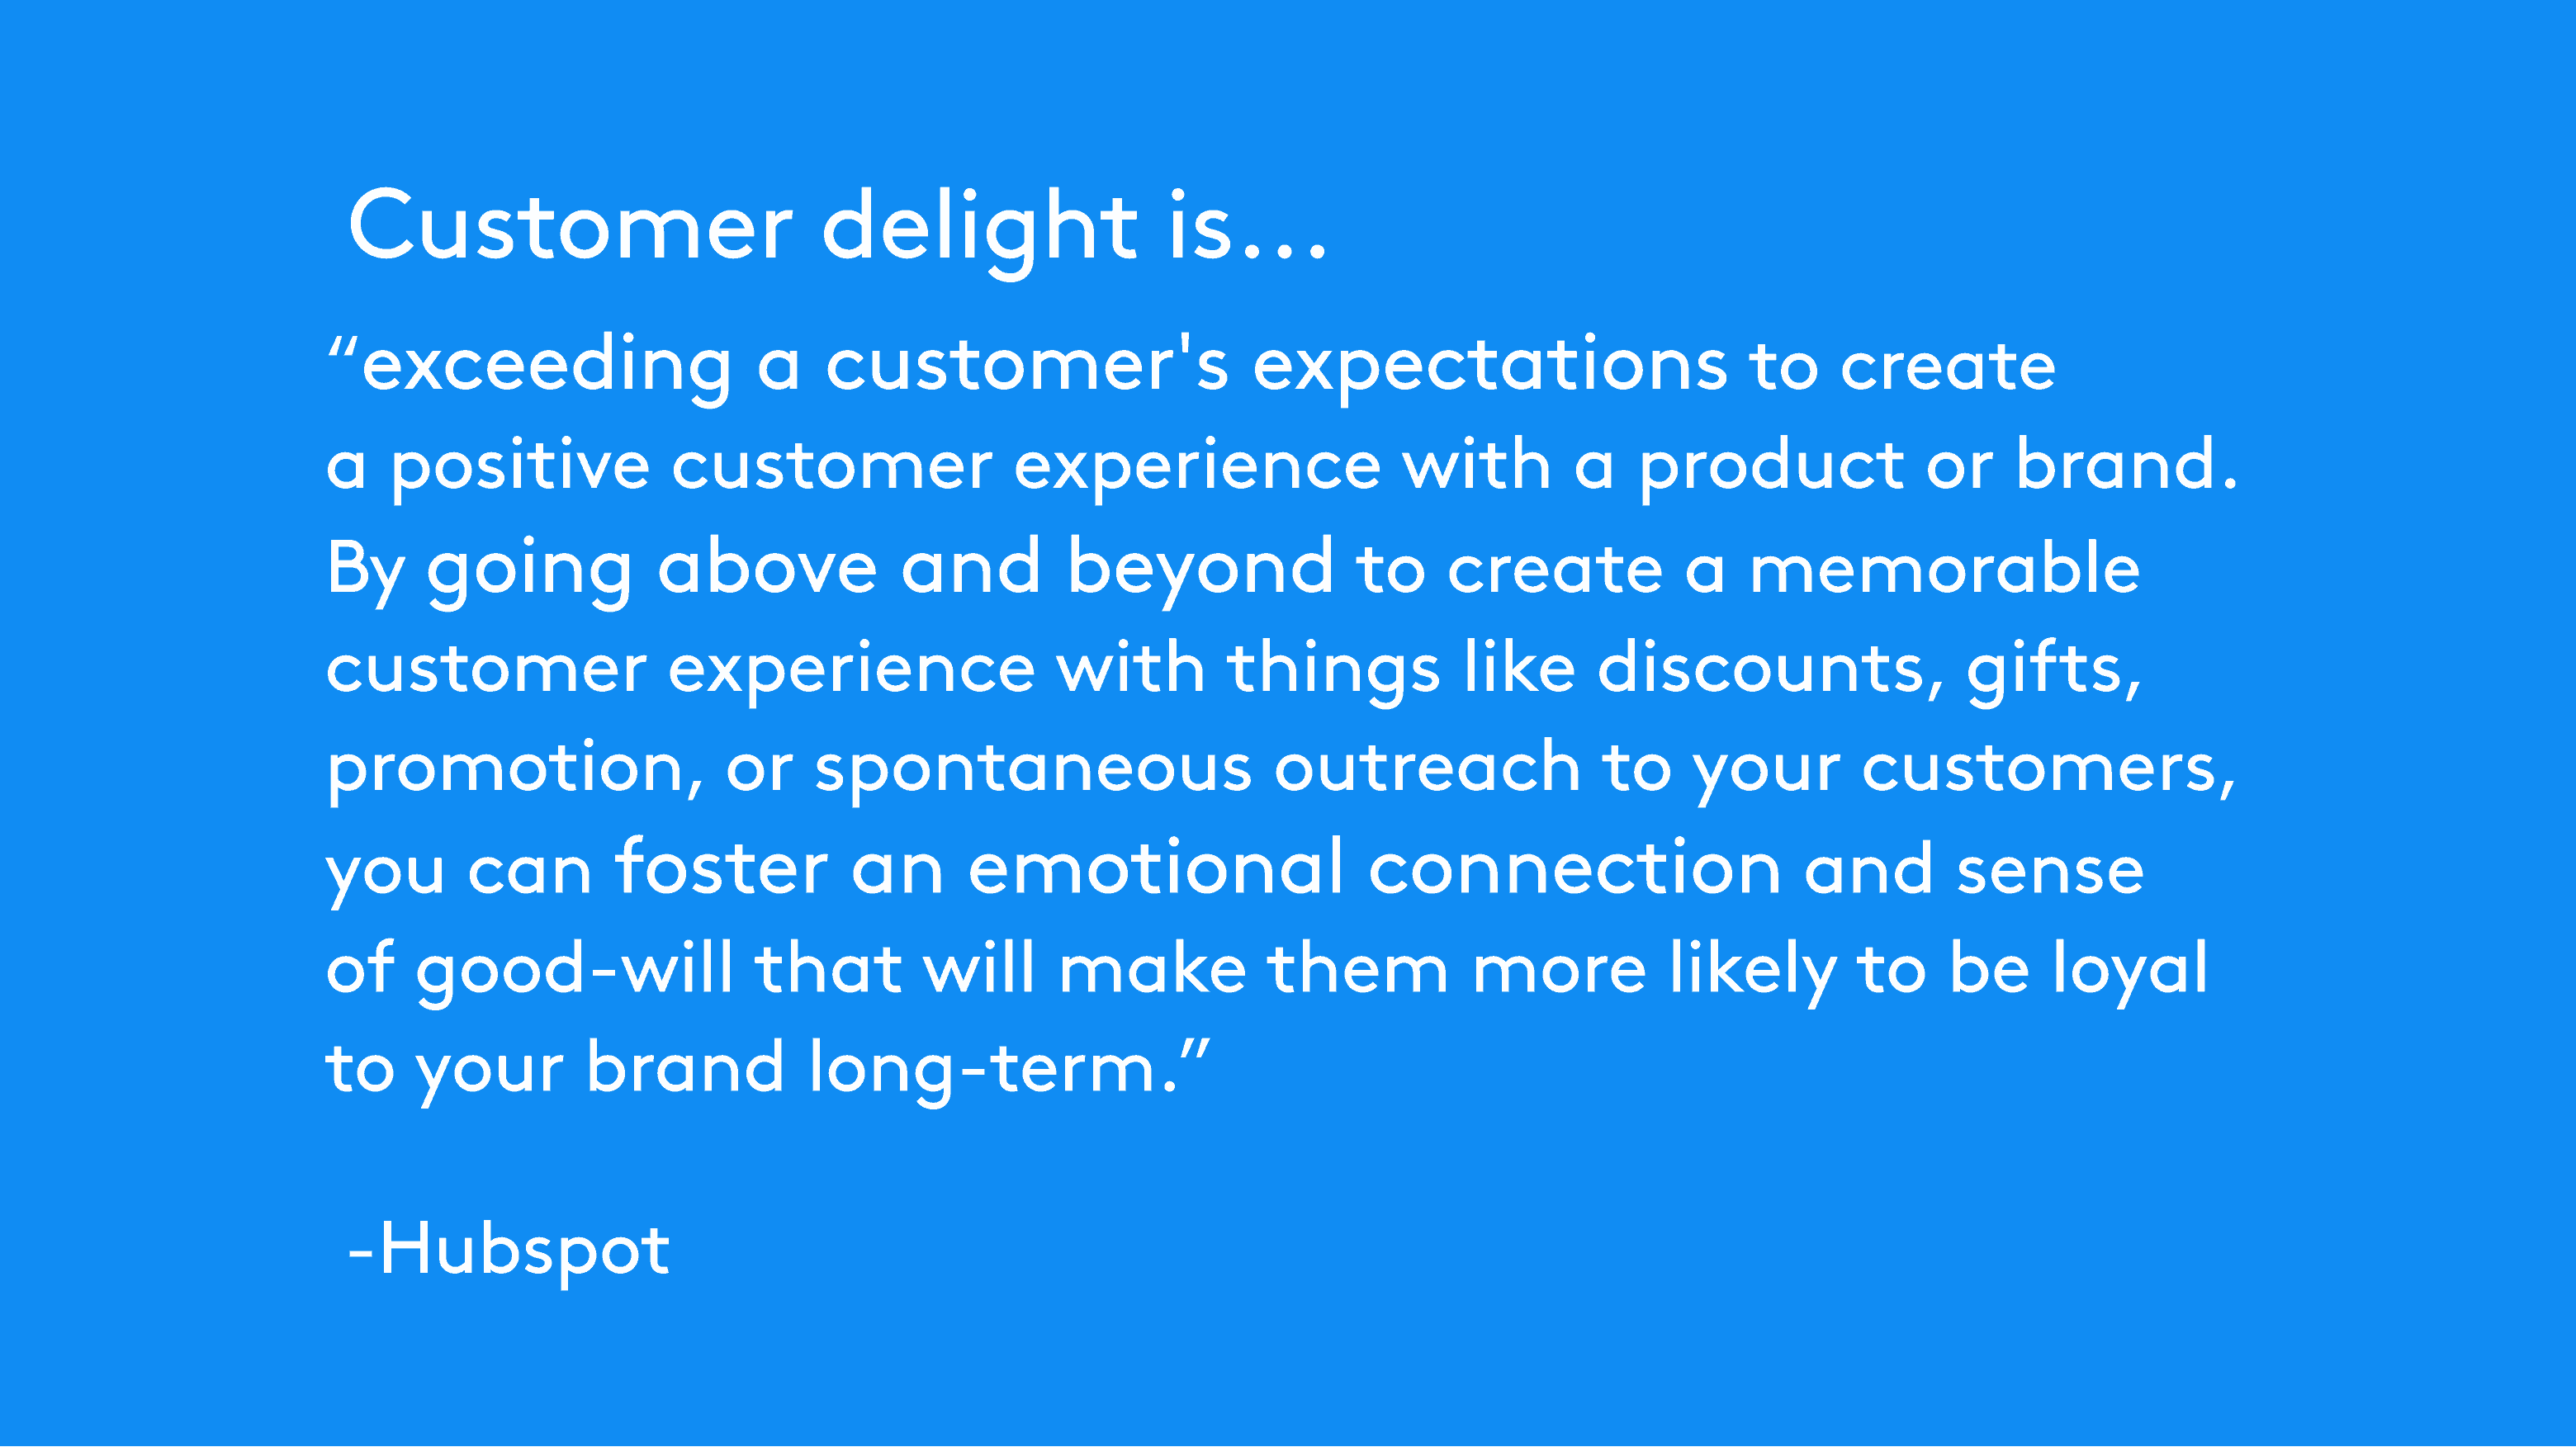 Hubspot about Customer delight